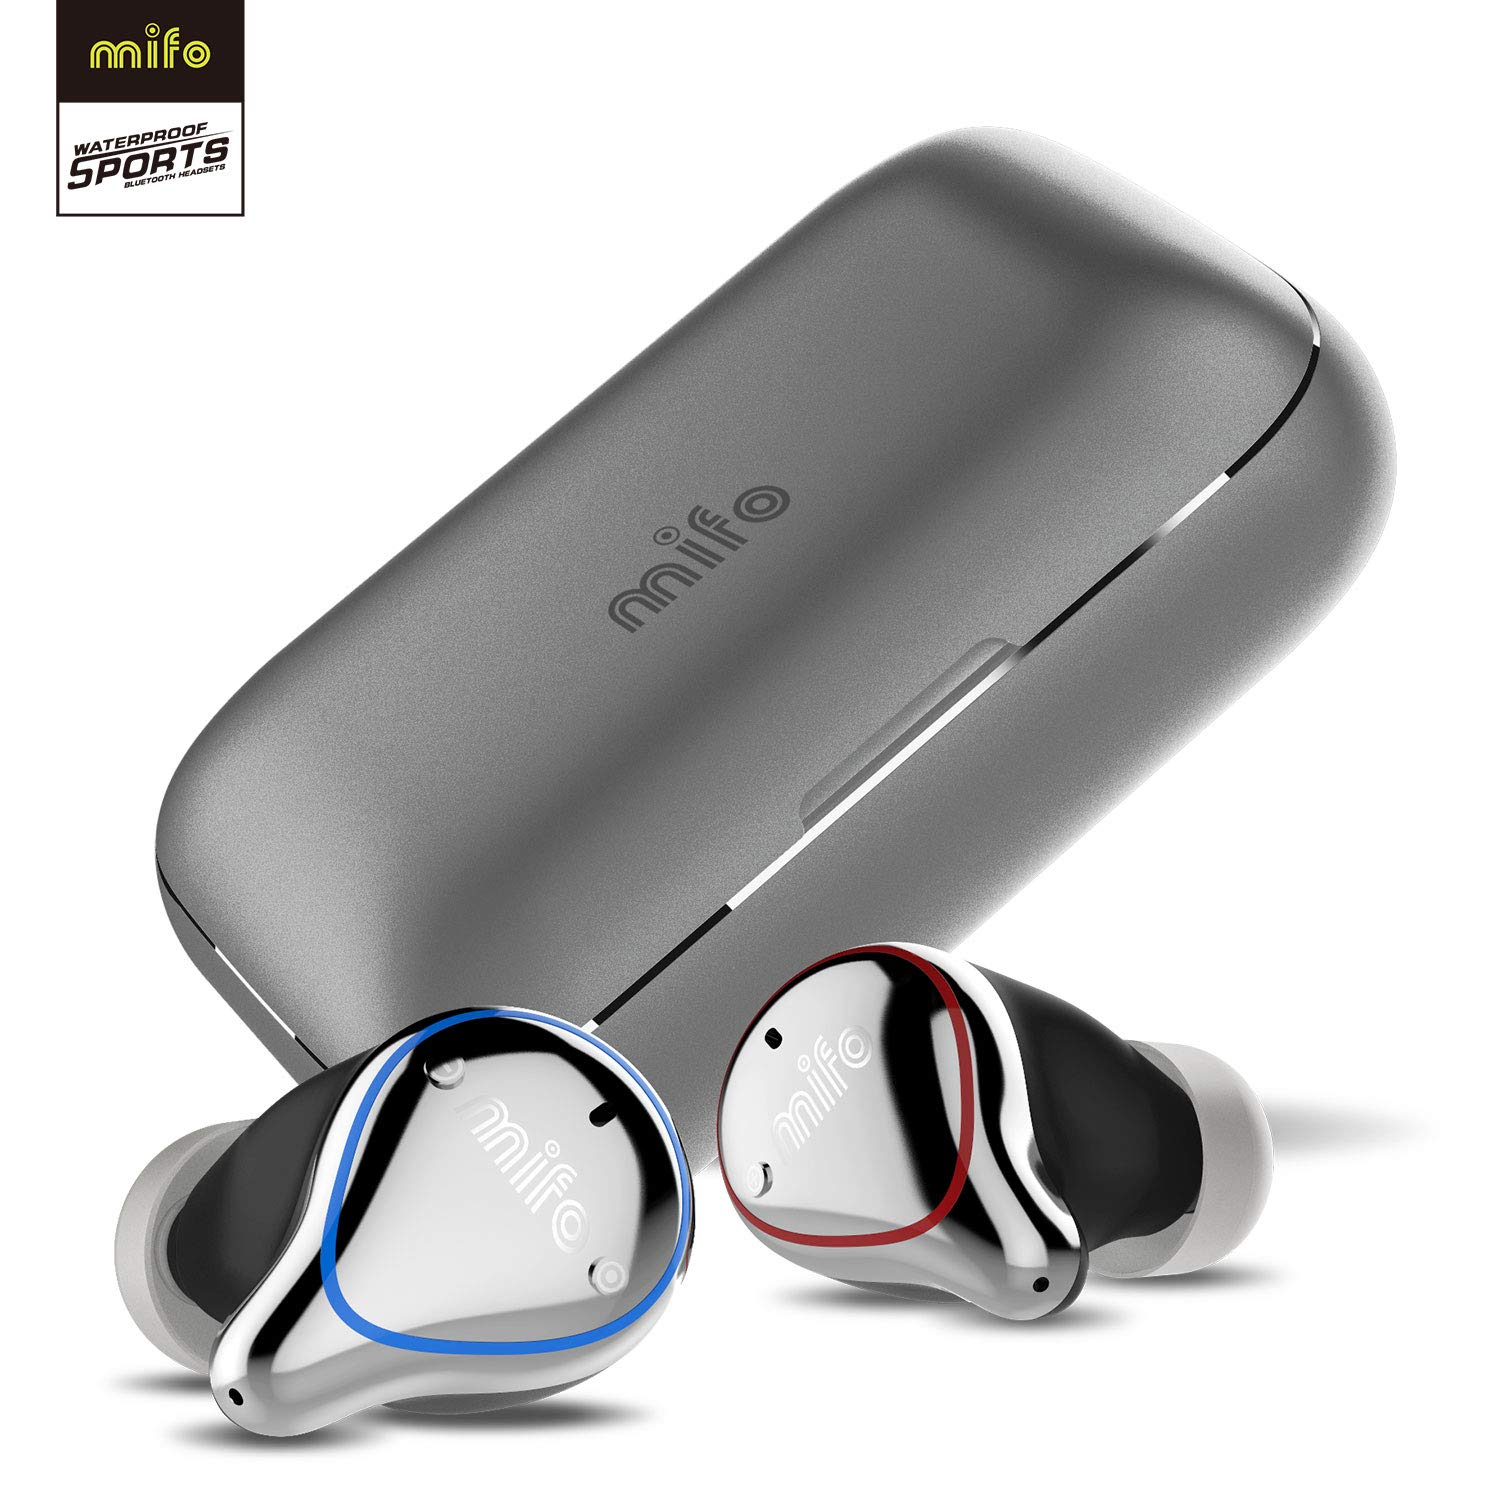 Wireless Earbuds, Mifo O5 Bluetooth 5.0 IPX7 Waterproofed Bluetooth Earbuds with 100 Hours Playtime, Hi-Fi Sound Wireless Headphones, Built-in Mic Bluetooth Earbuds with 2600mAH Portable Charging Case